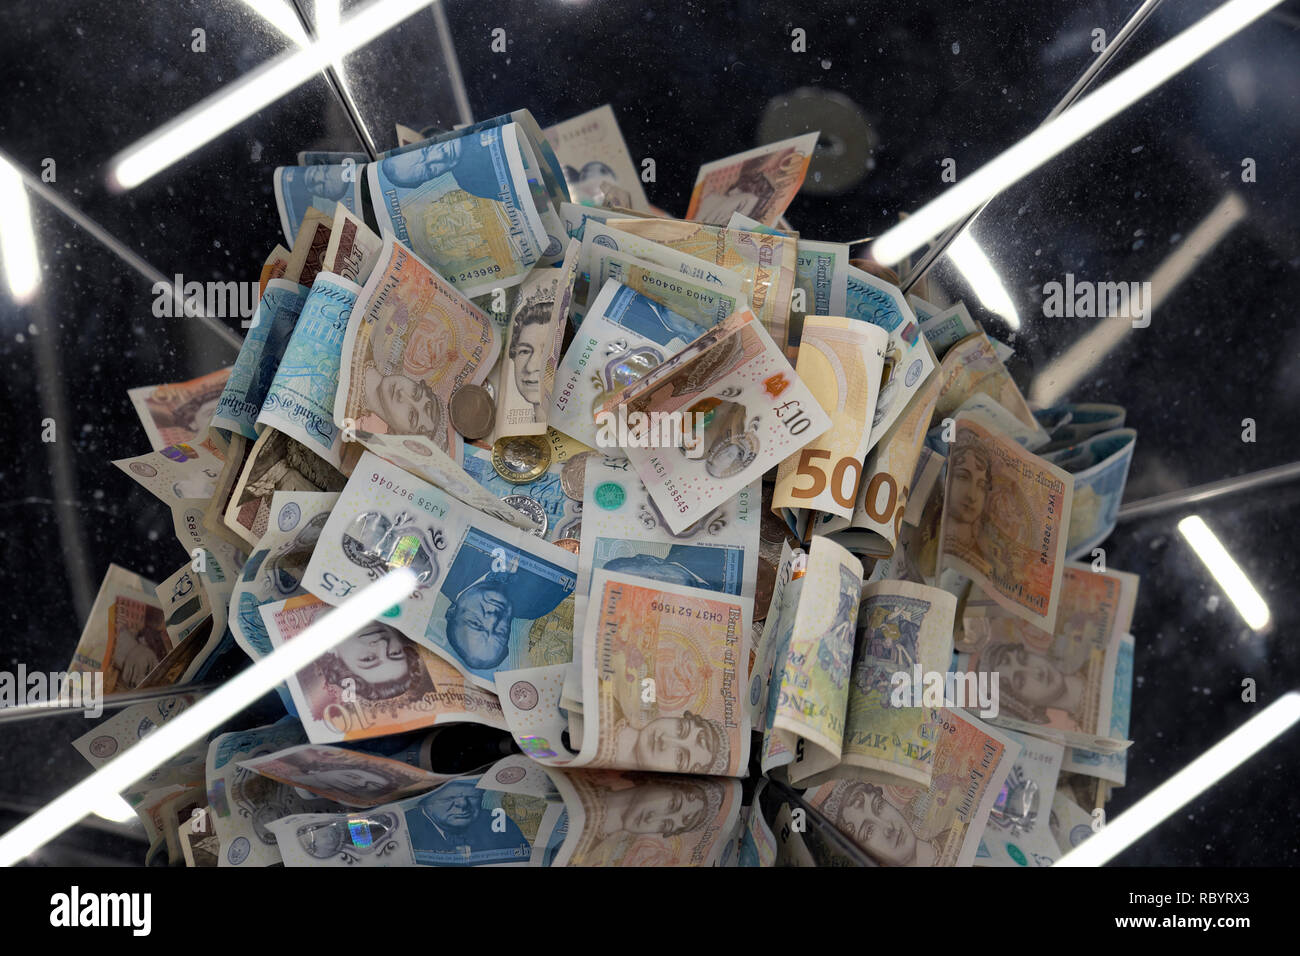 A pile of British sterling paper and polymer money £5 and £10 bank notes in a collection box  with light reflections in London UK  KATHY DEWITT - Stock Image